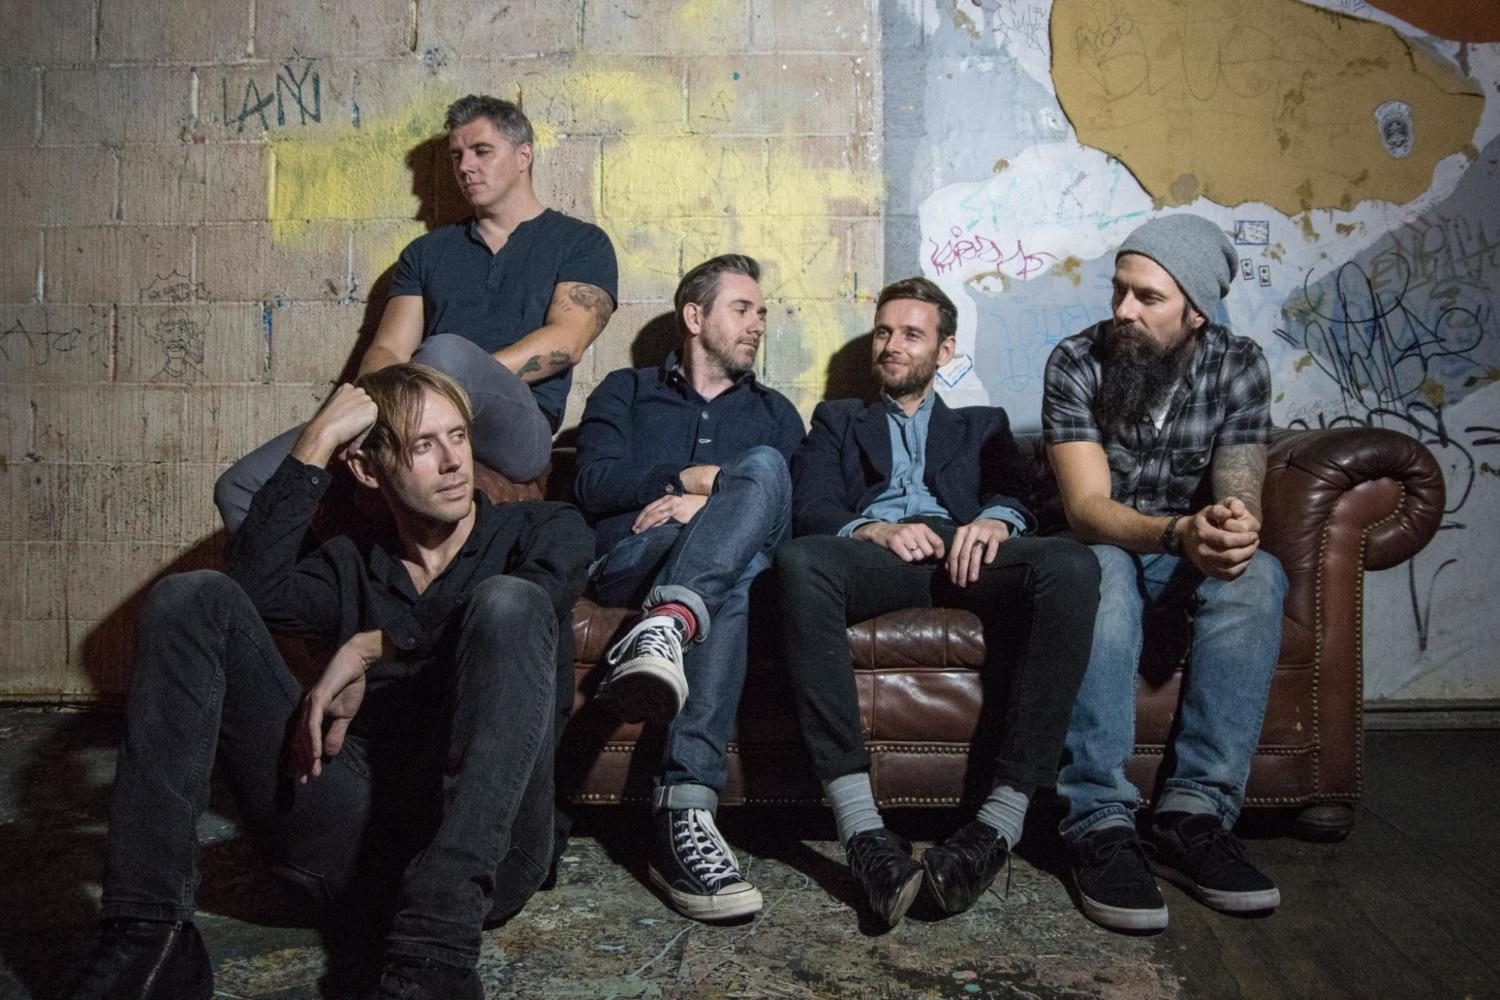 No Devotion stream debut album, 'Permanence' ahead of release